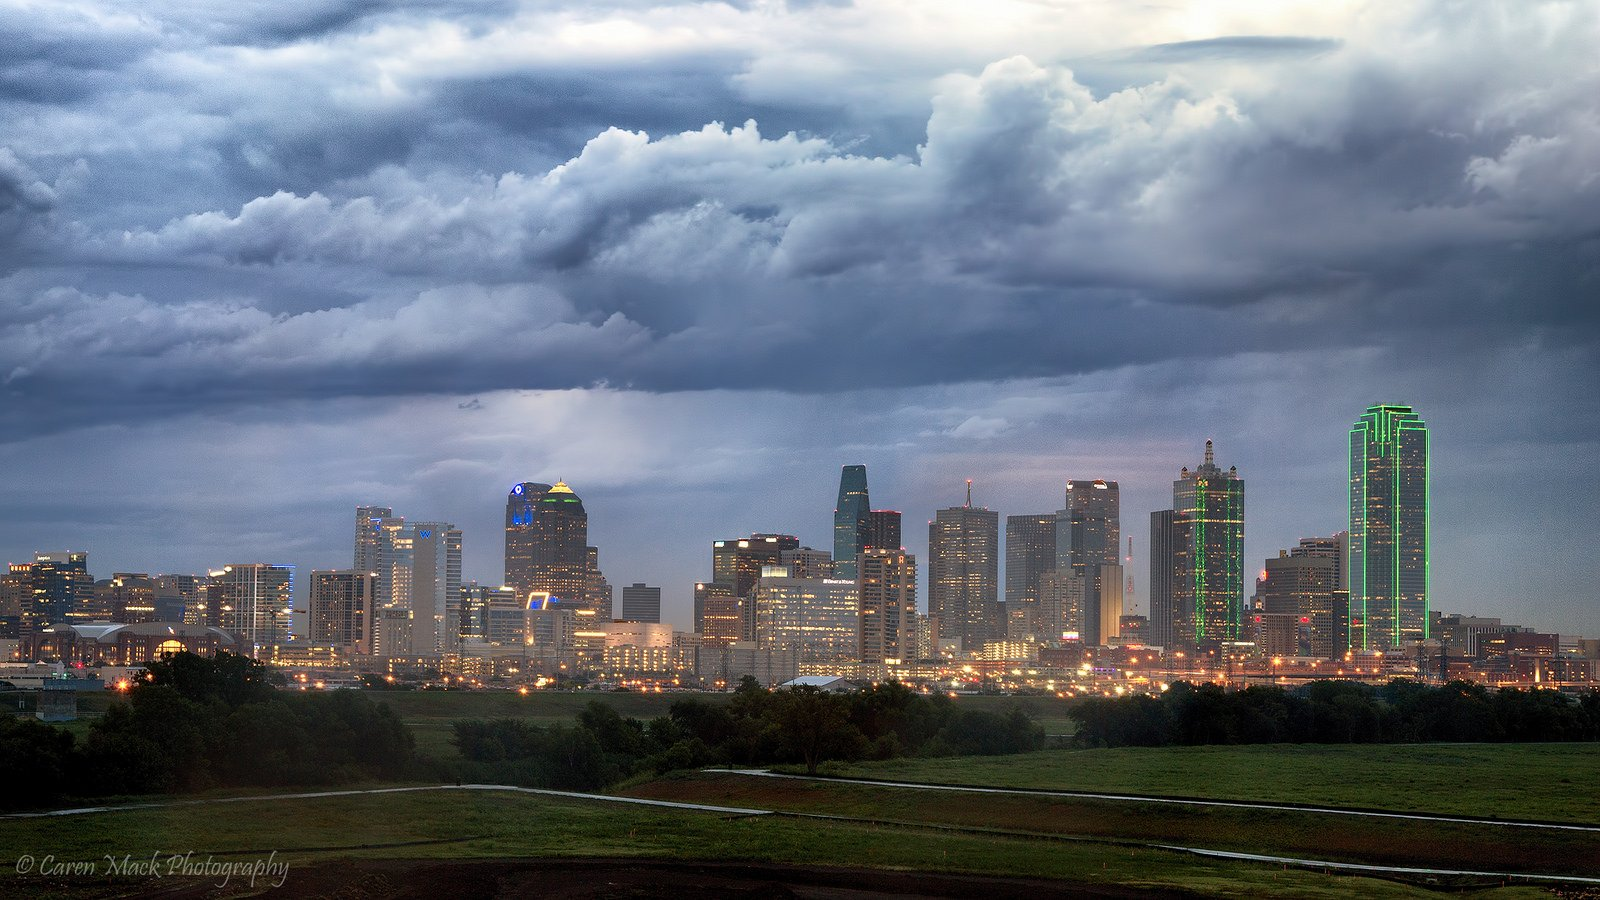 downtown dallas hd wallpapers - photo #39